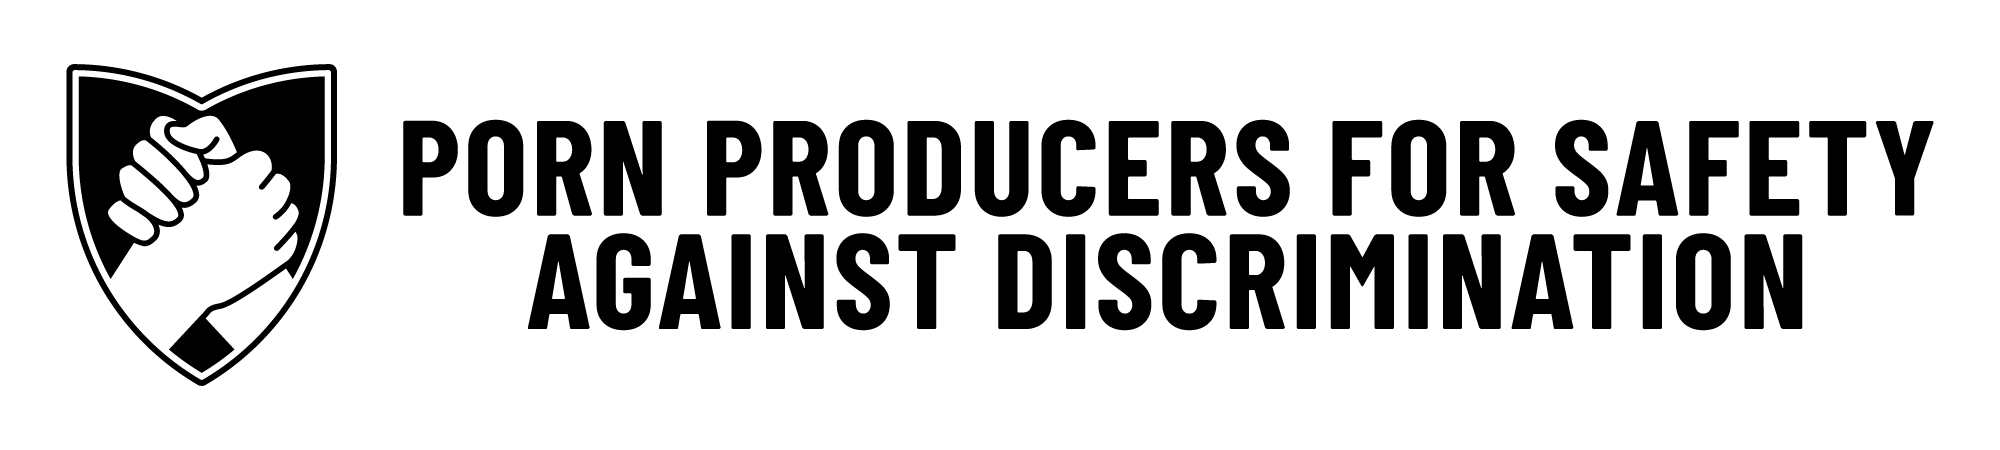 Porn Producers for Safety Against Discrimination